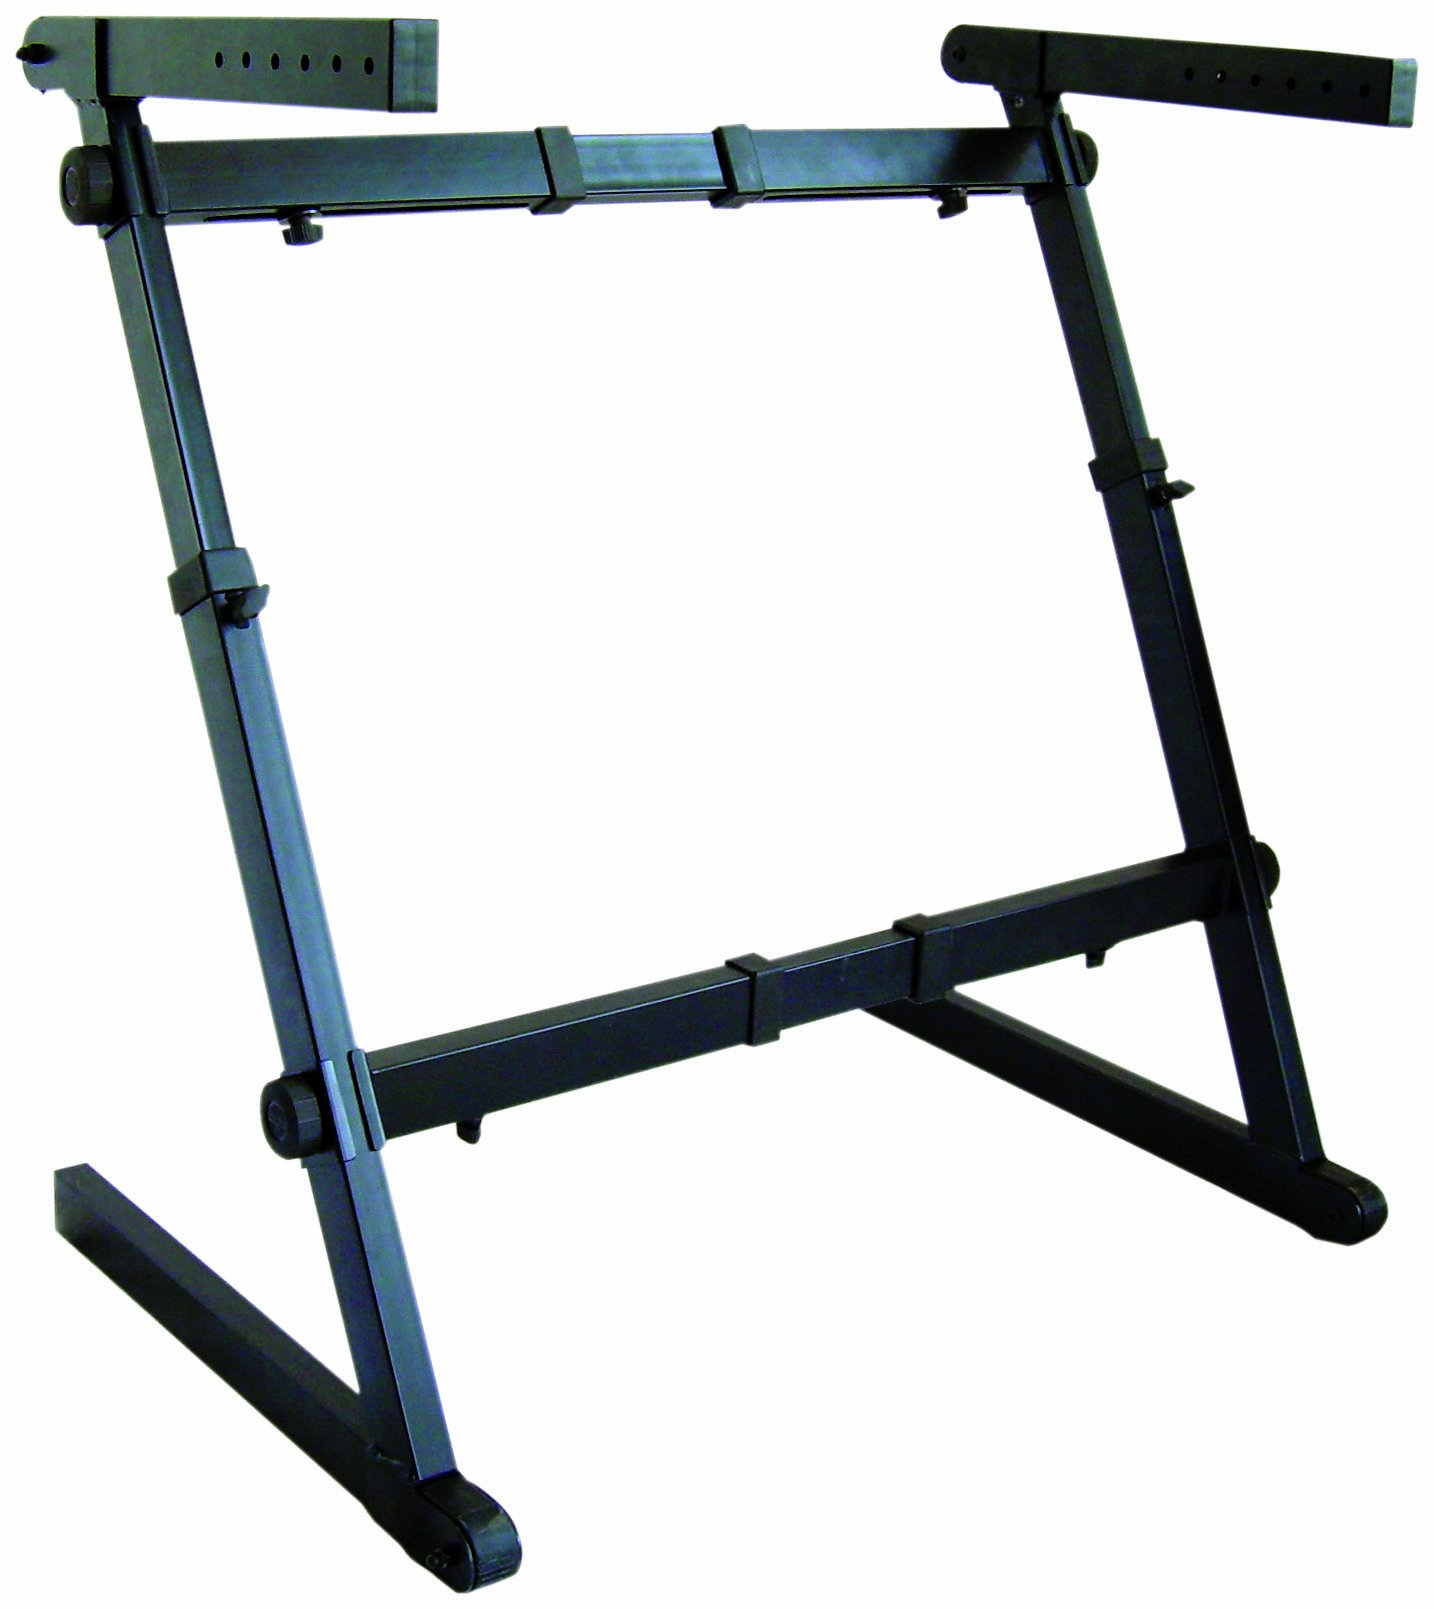 Quik Lok Z-70 Keyboard stands and displays